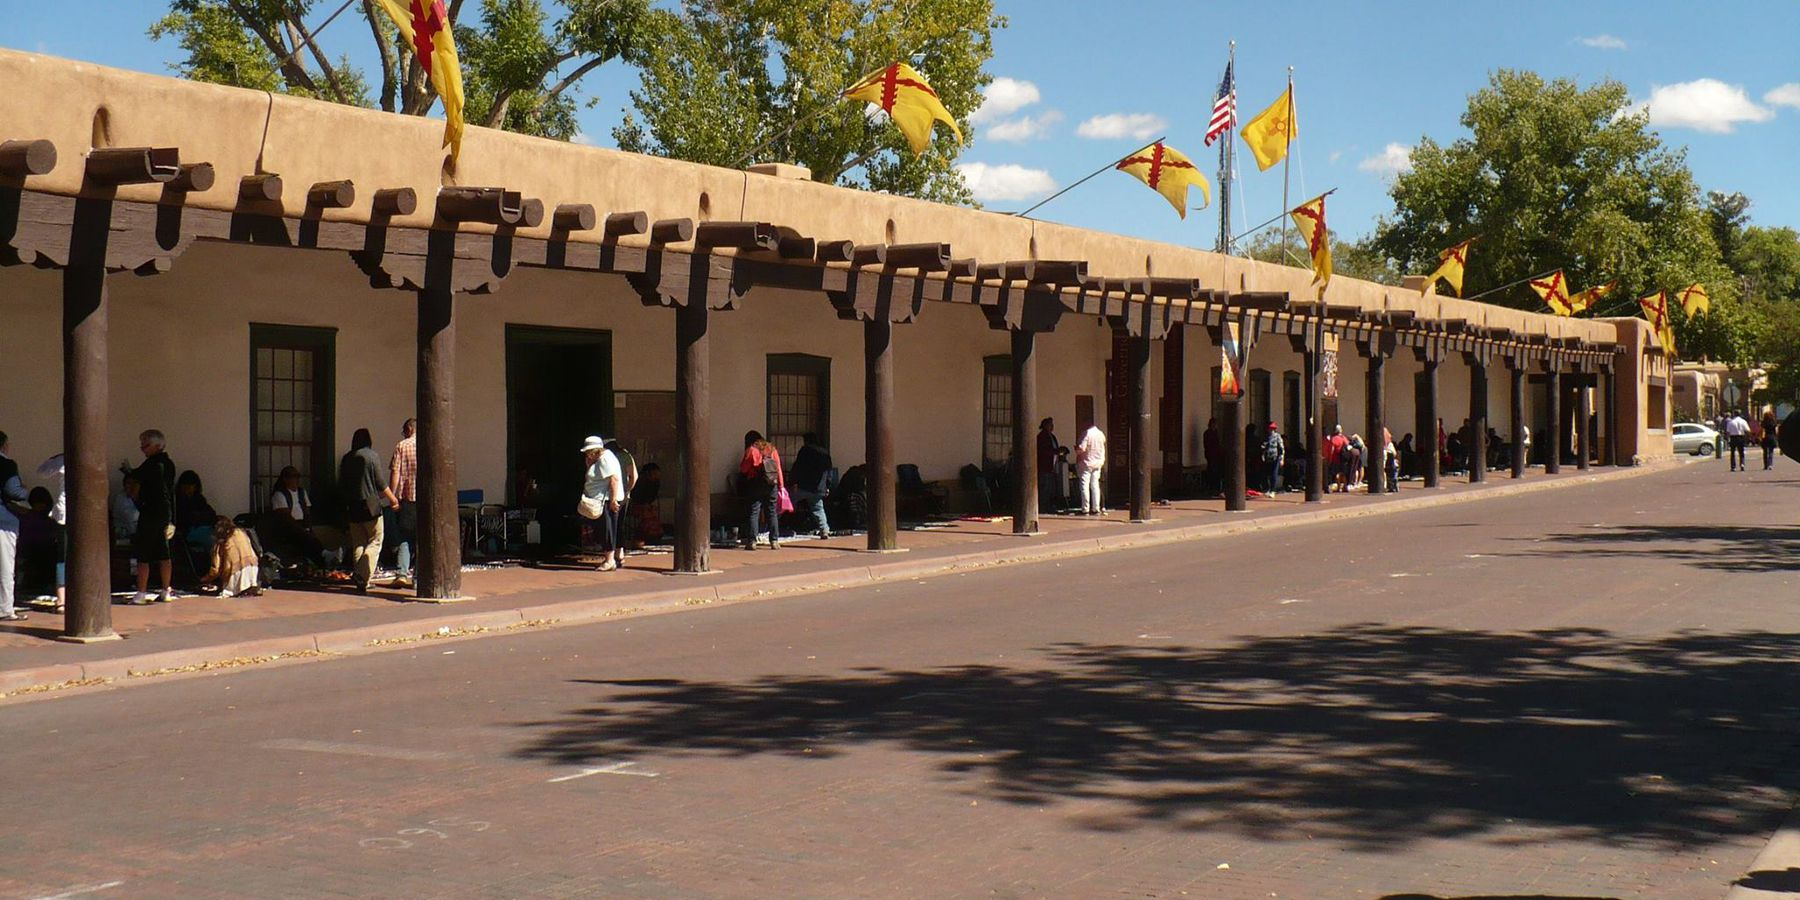 The Plaza - Santa Fe - New Mexico - Amerika - Doets Reizen